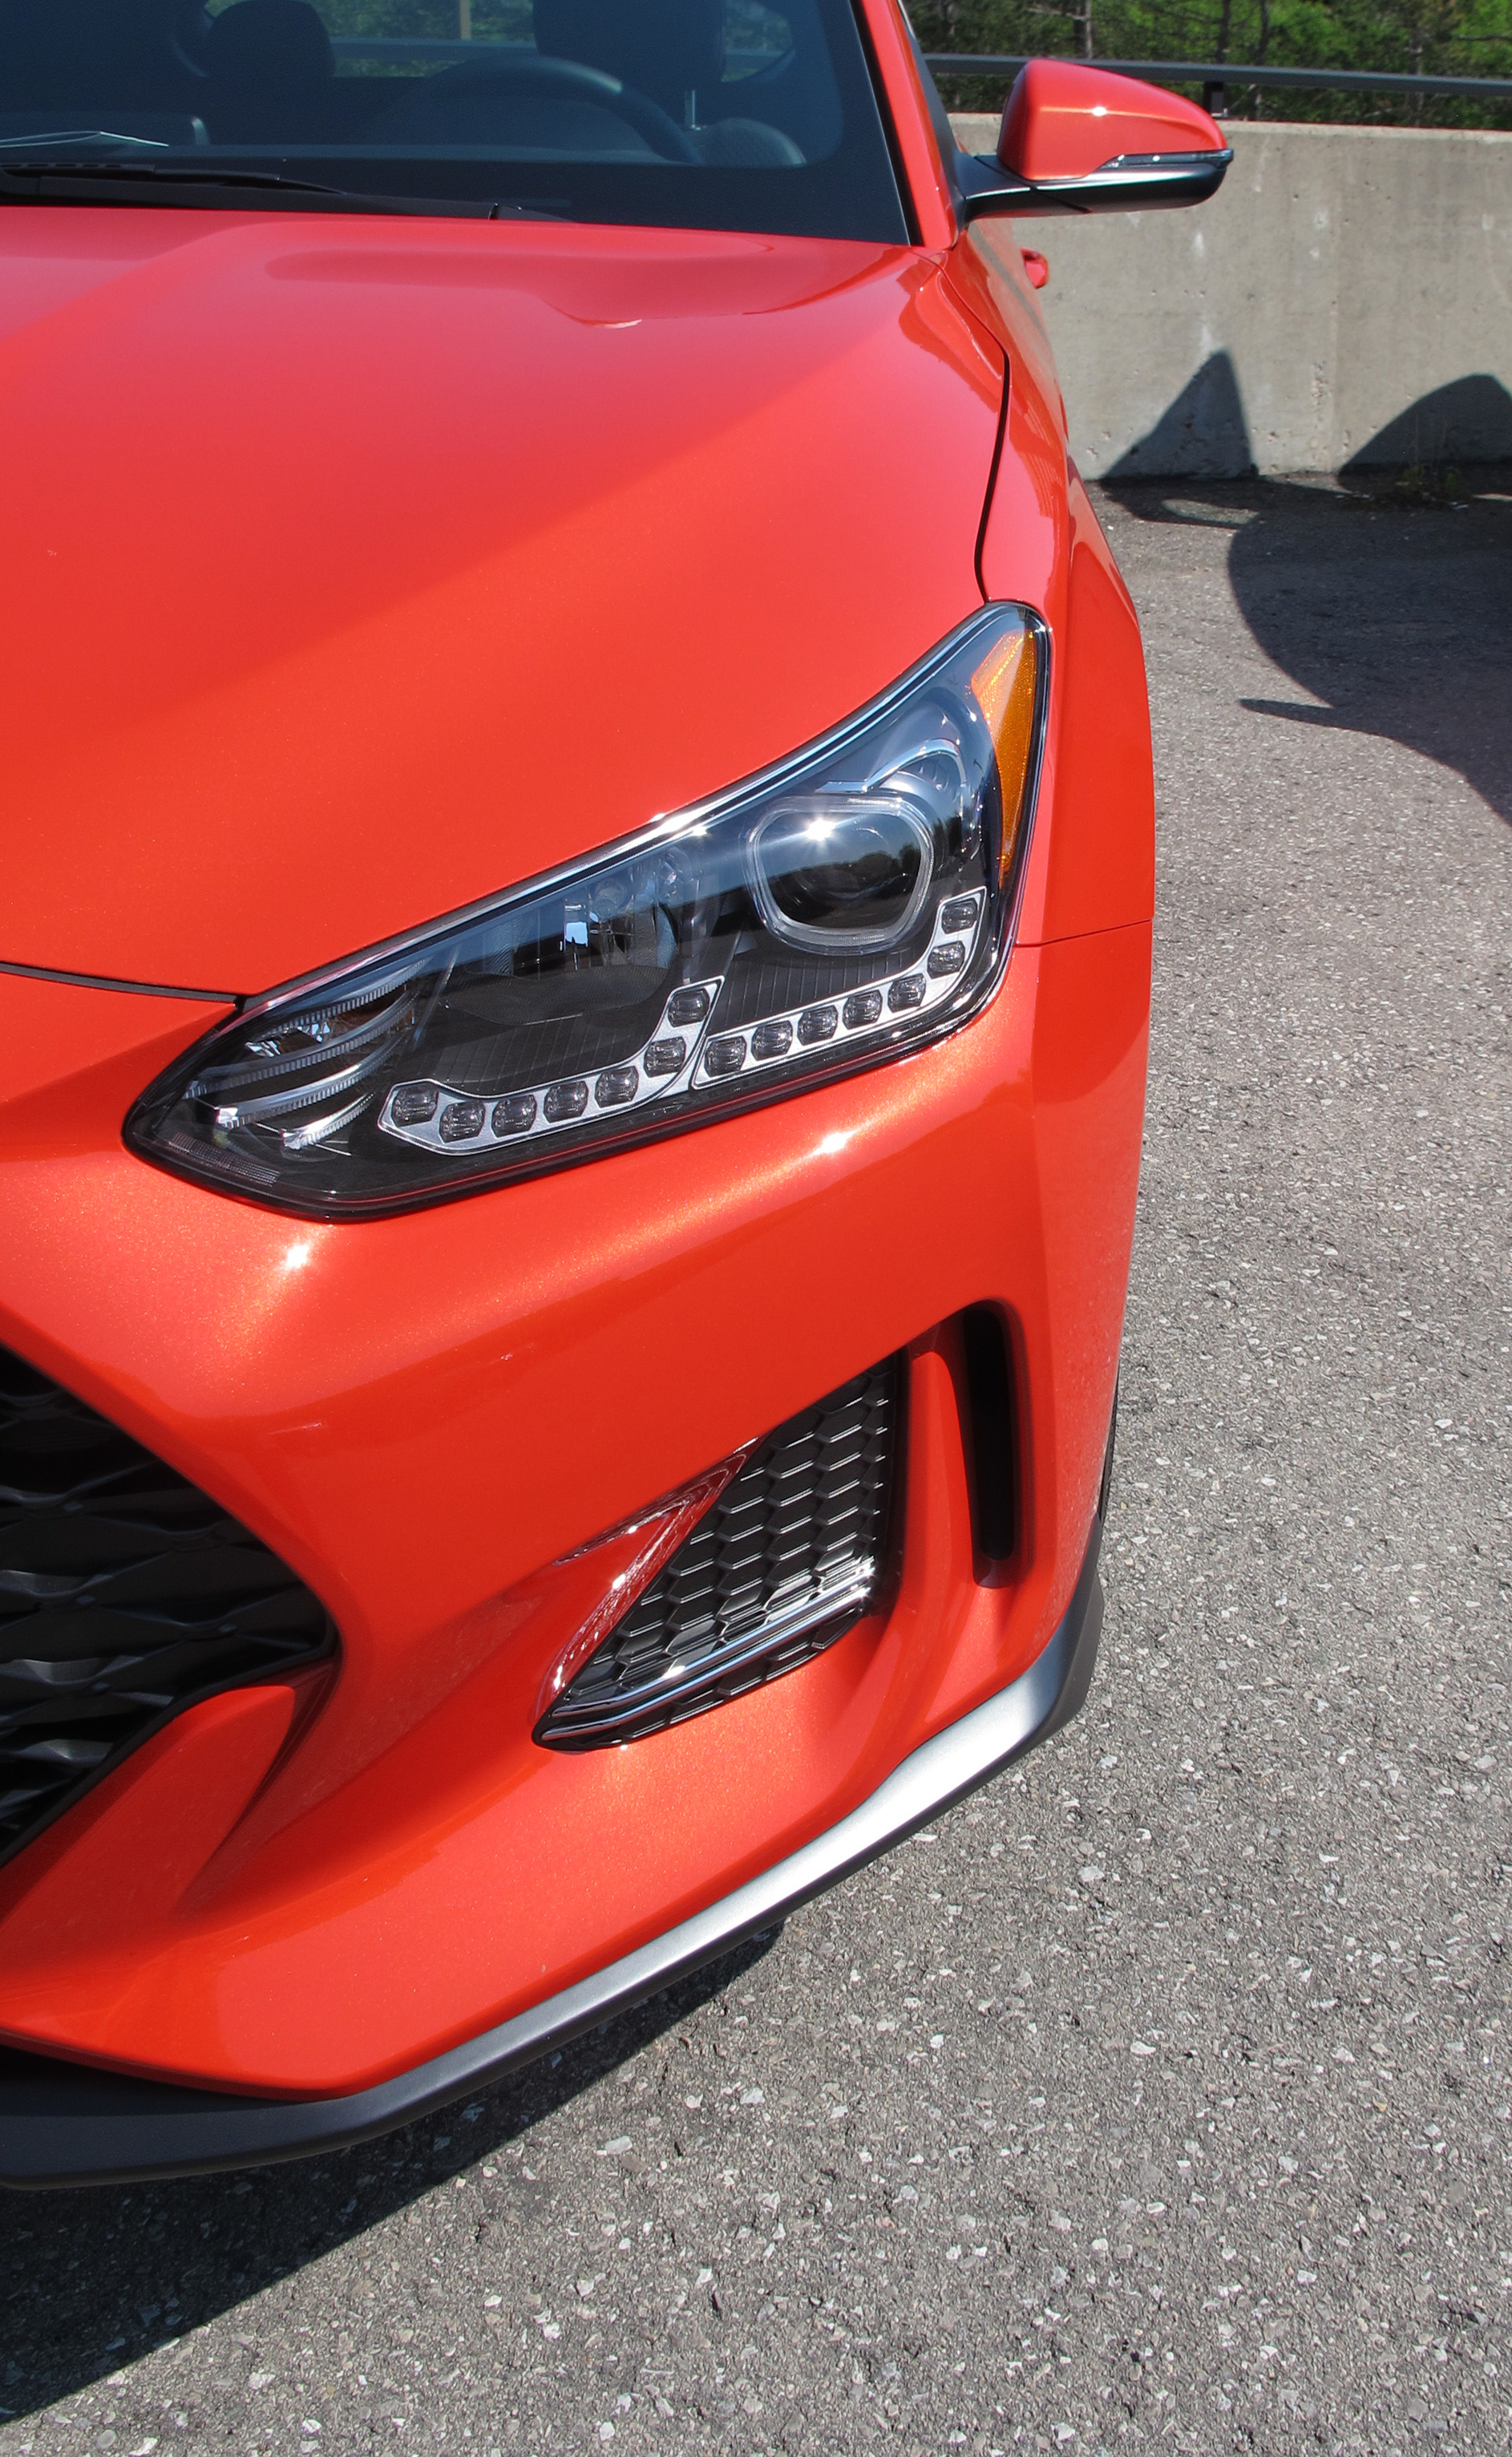 First Drive: 2019 Hyundai Veloster